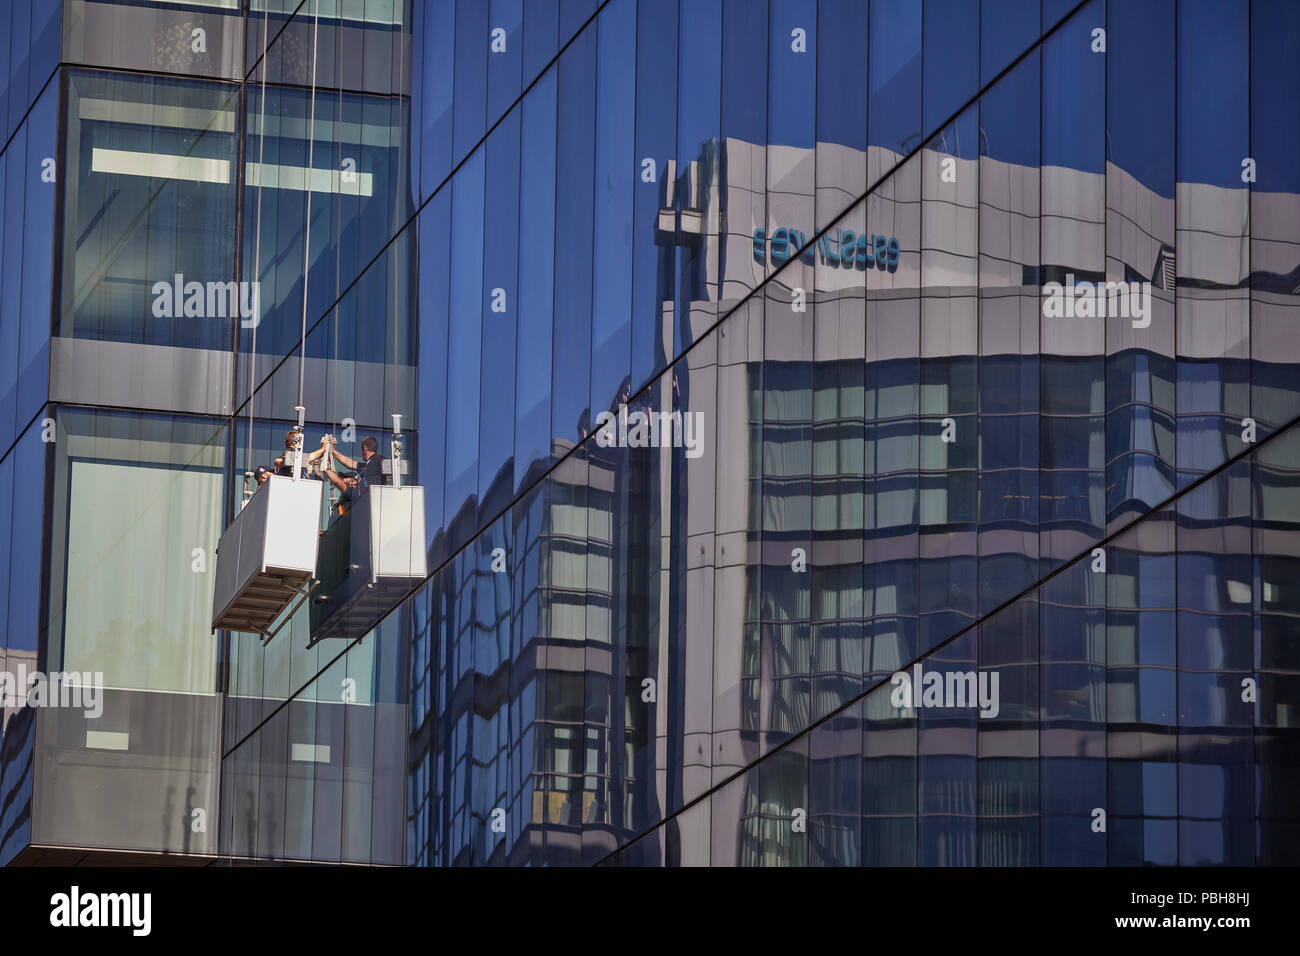 Windowcleaners in a bucket Manchester city centre No.1 Spinningfields Allied London in Hardman Square financial district landmark hi rise office build - Stock Image